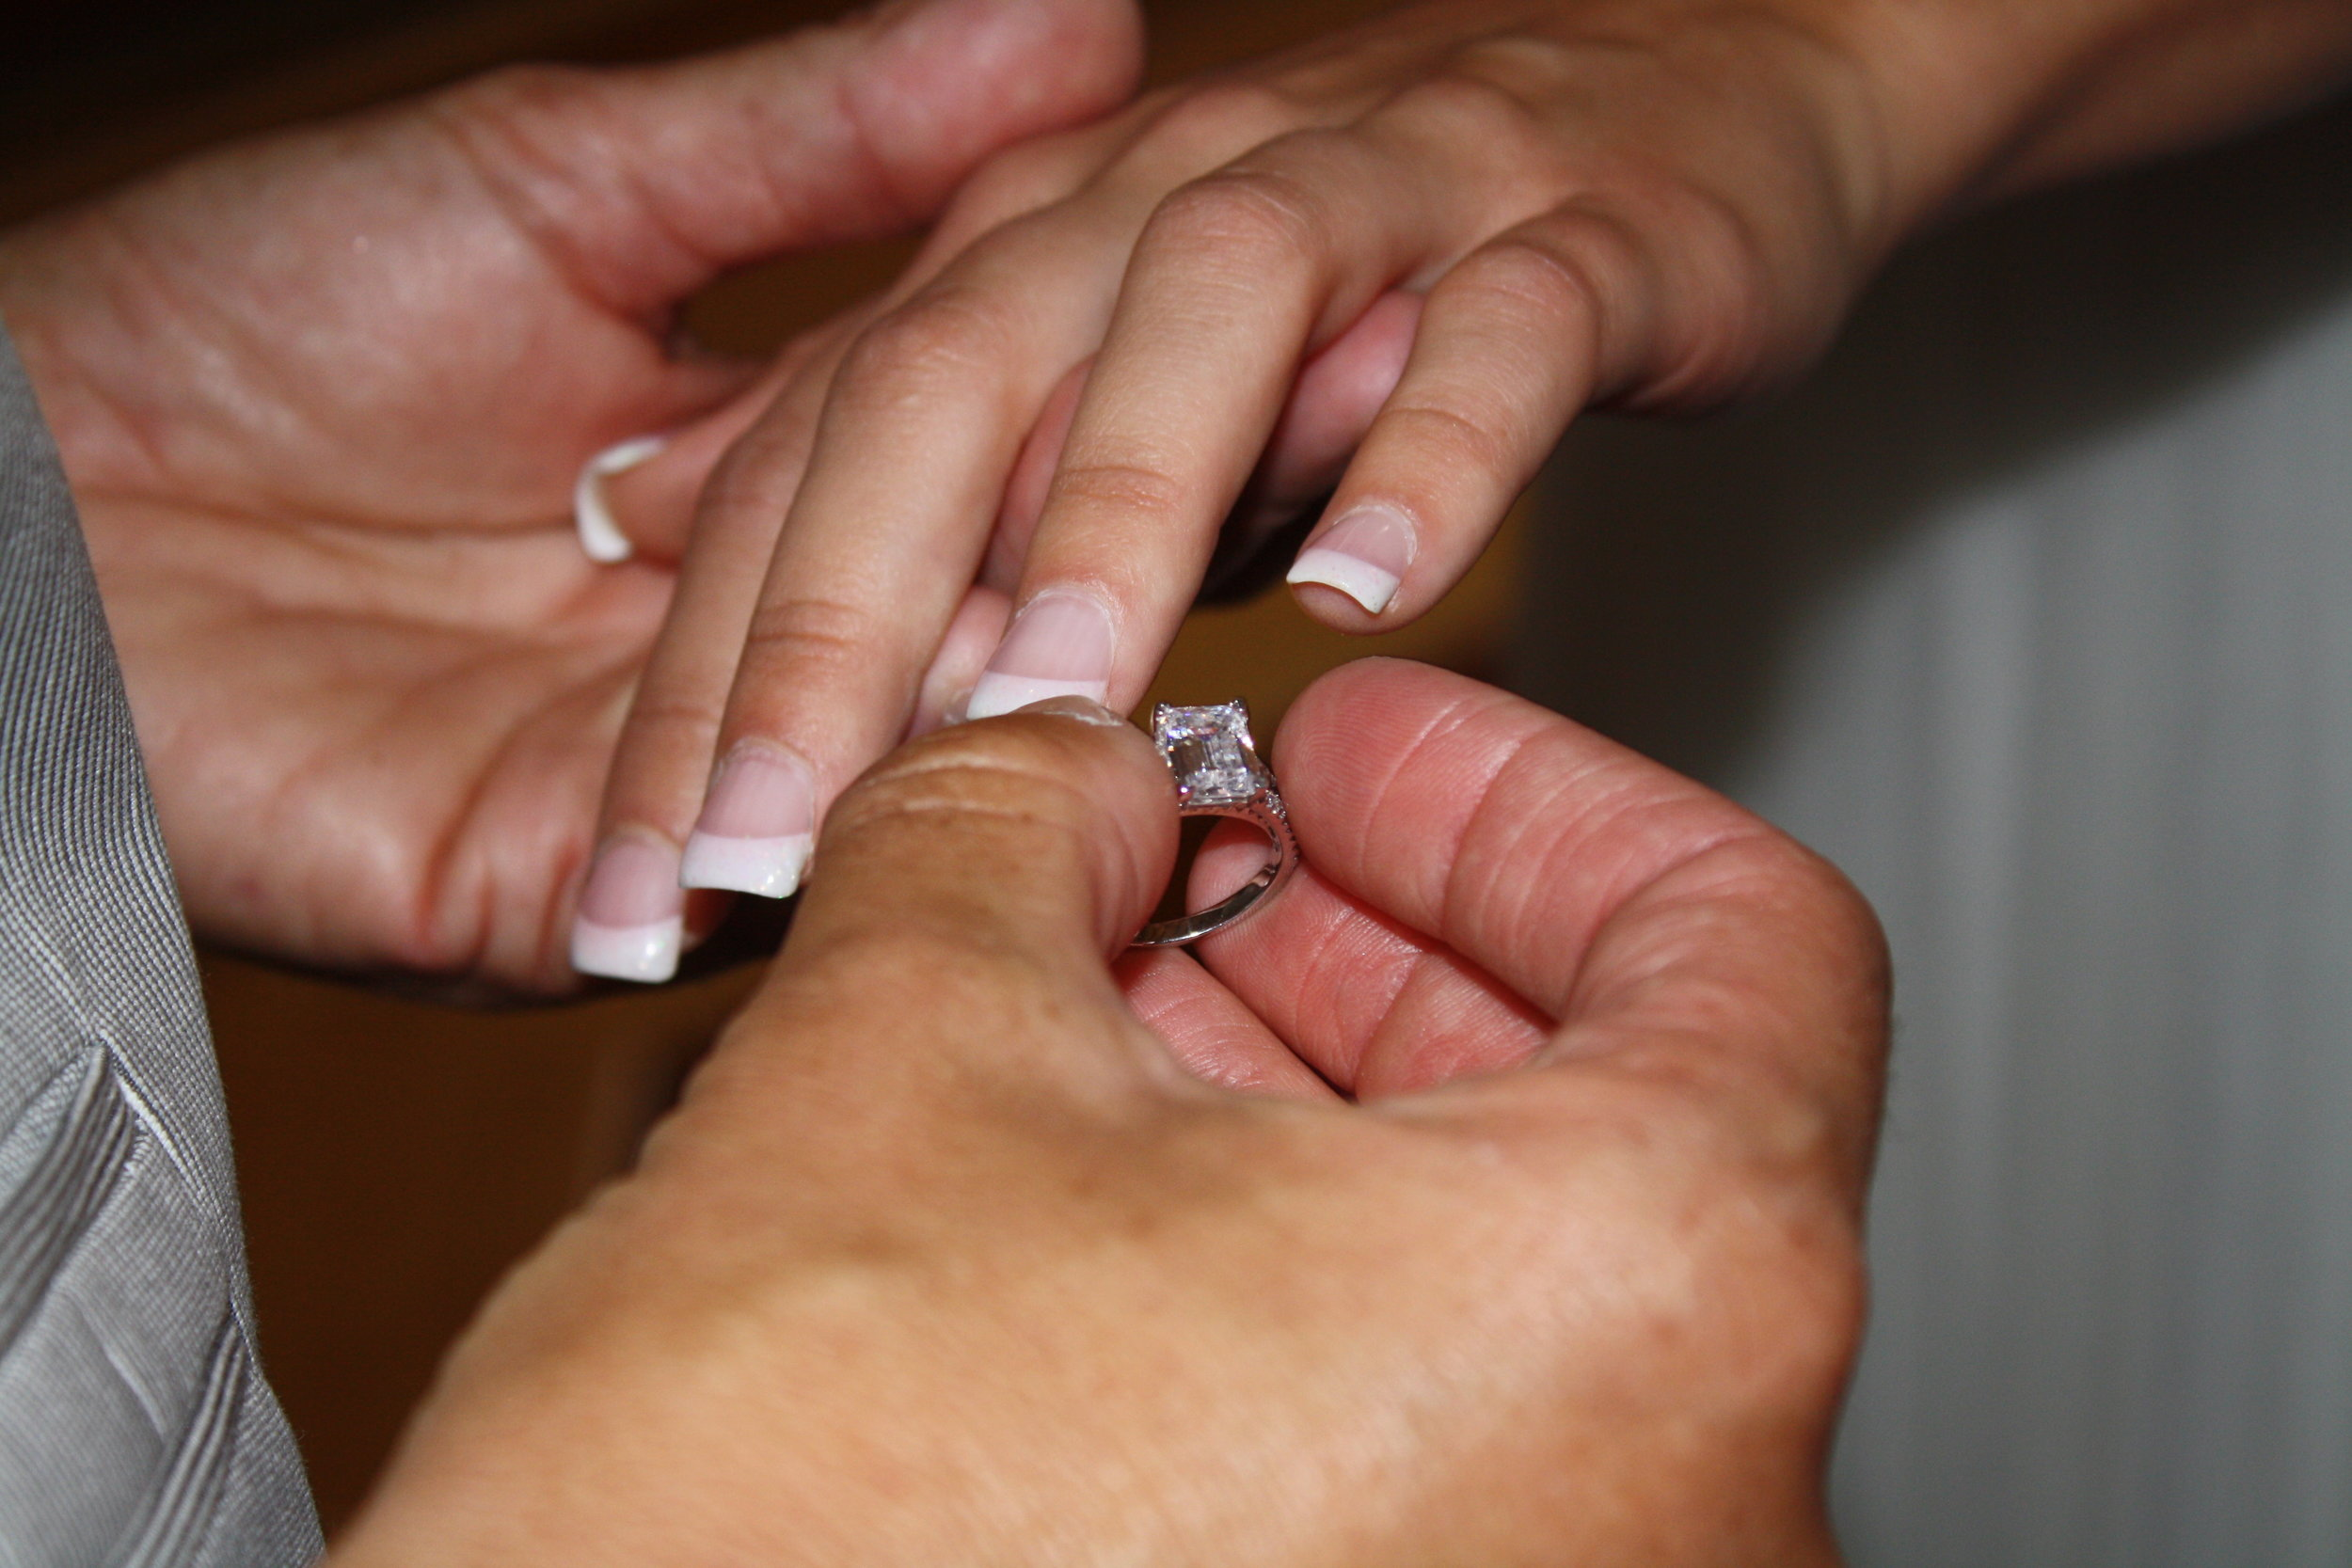 She liked it, so she put a ring on it!